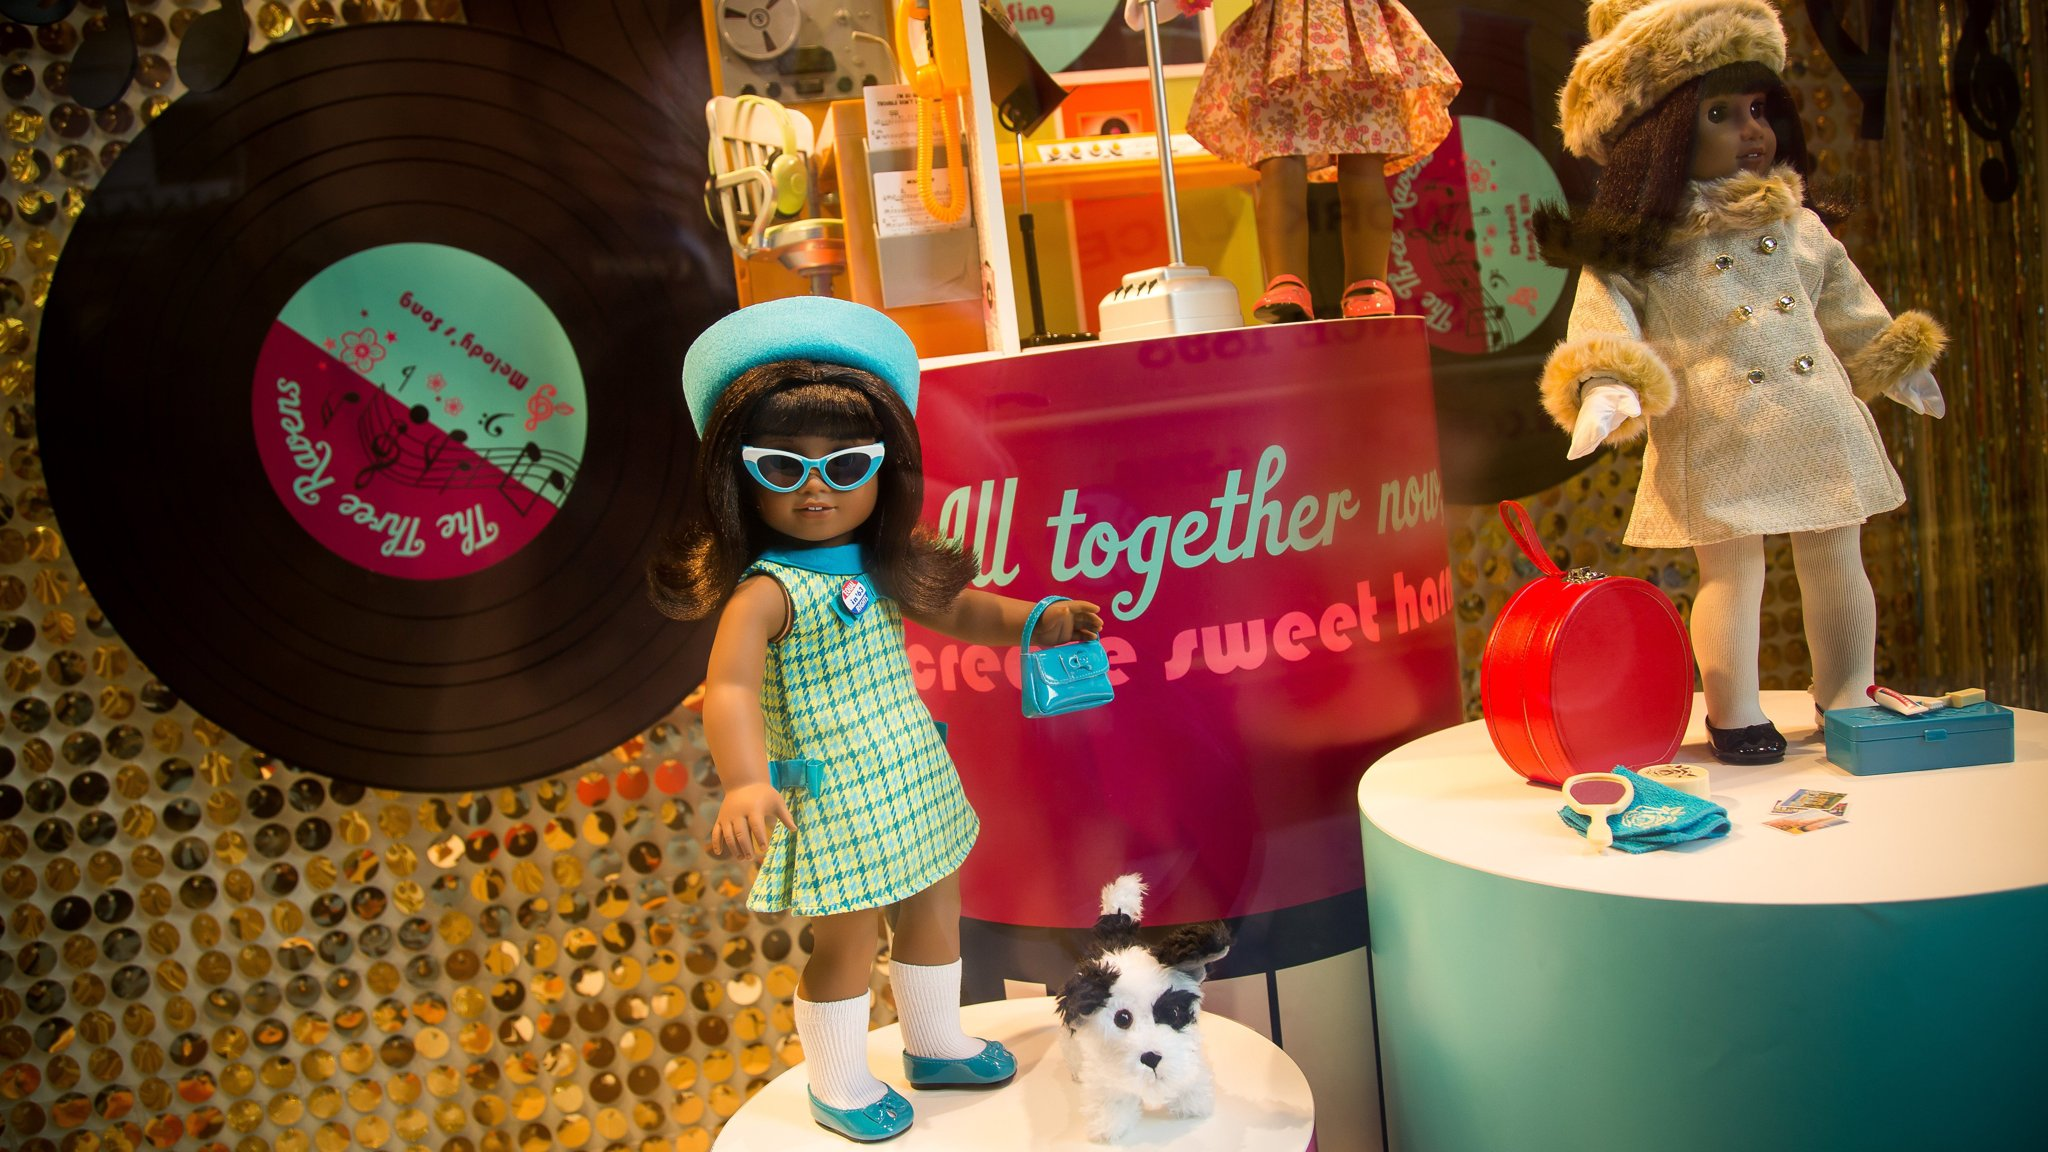 Toymakers rethink traditional playbook